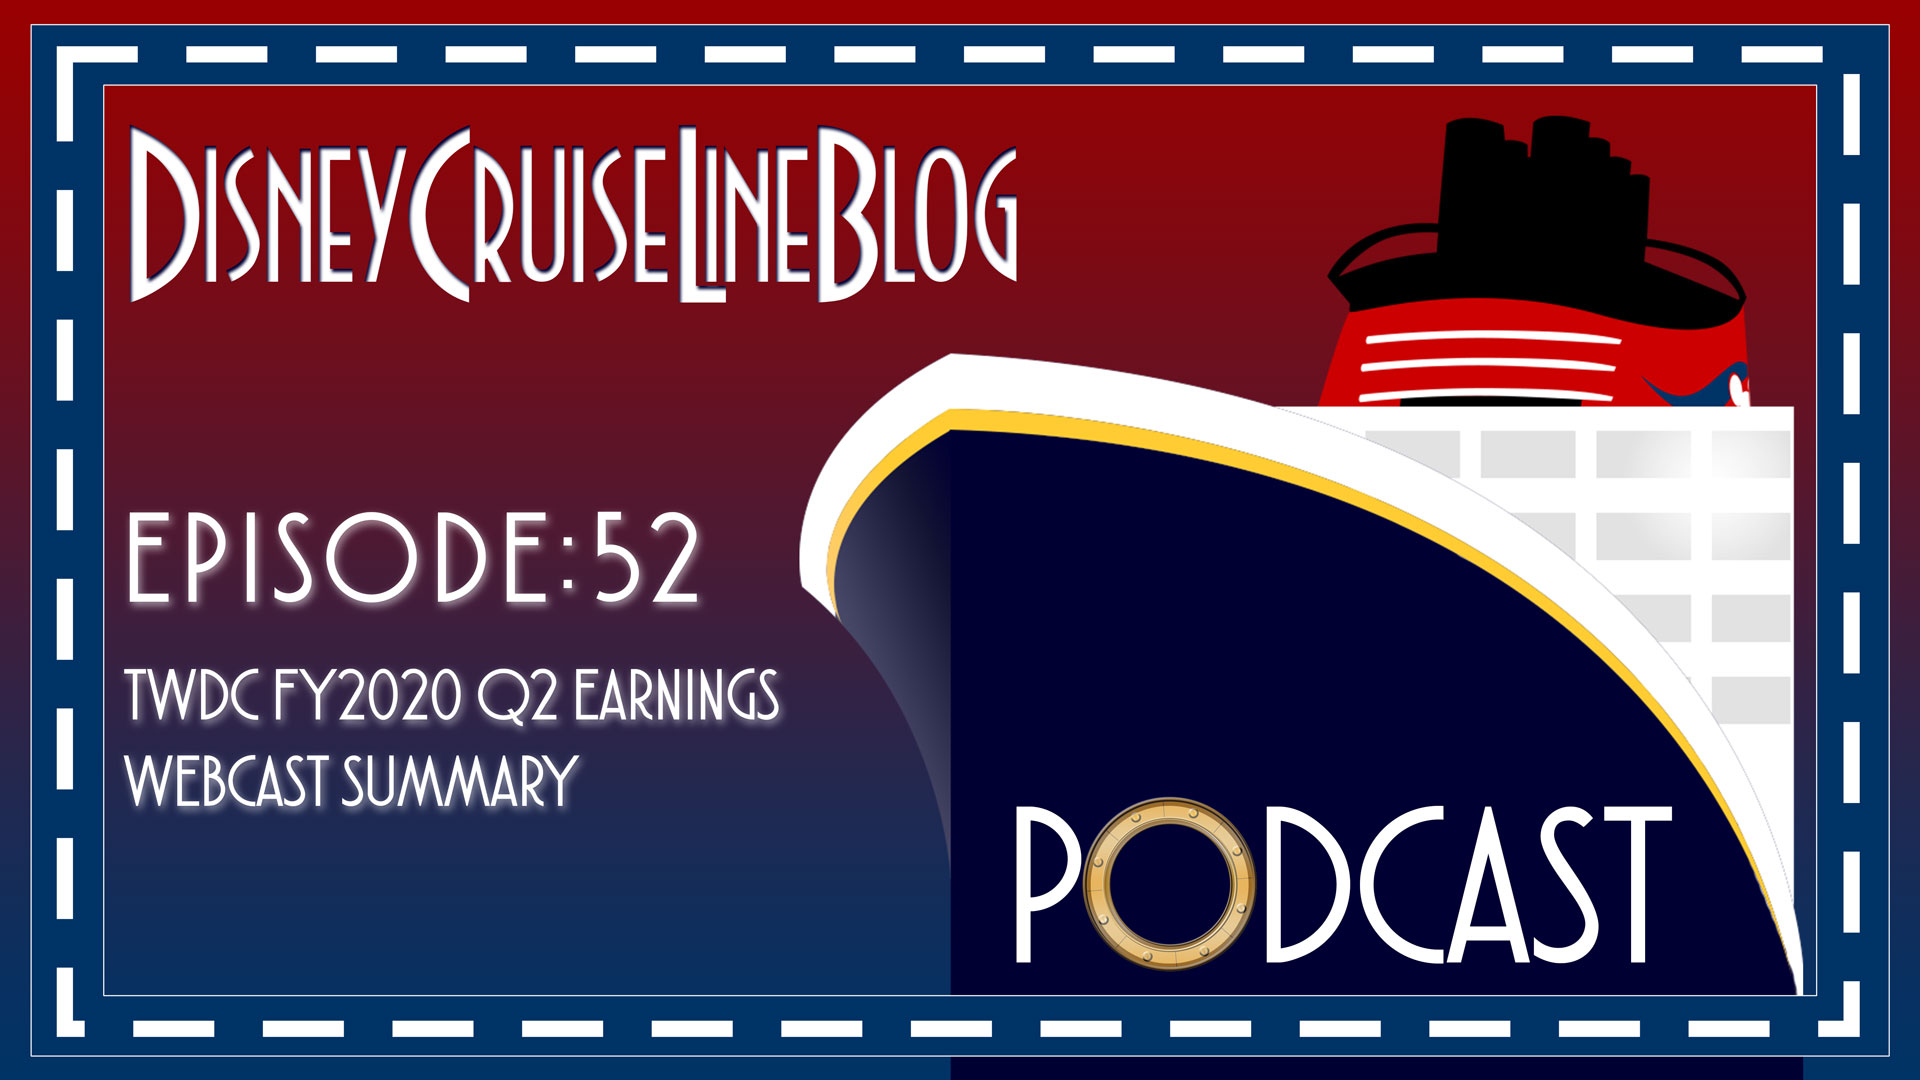 DCL Blog Podcast Episode 52 TWDC FY2020 Q2 Earnings Webcast Summary